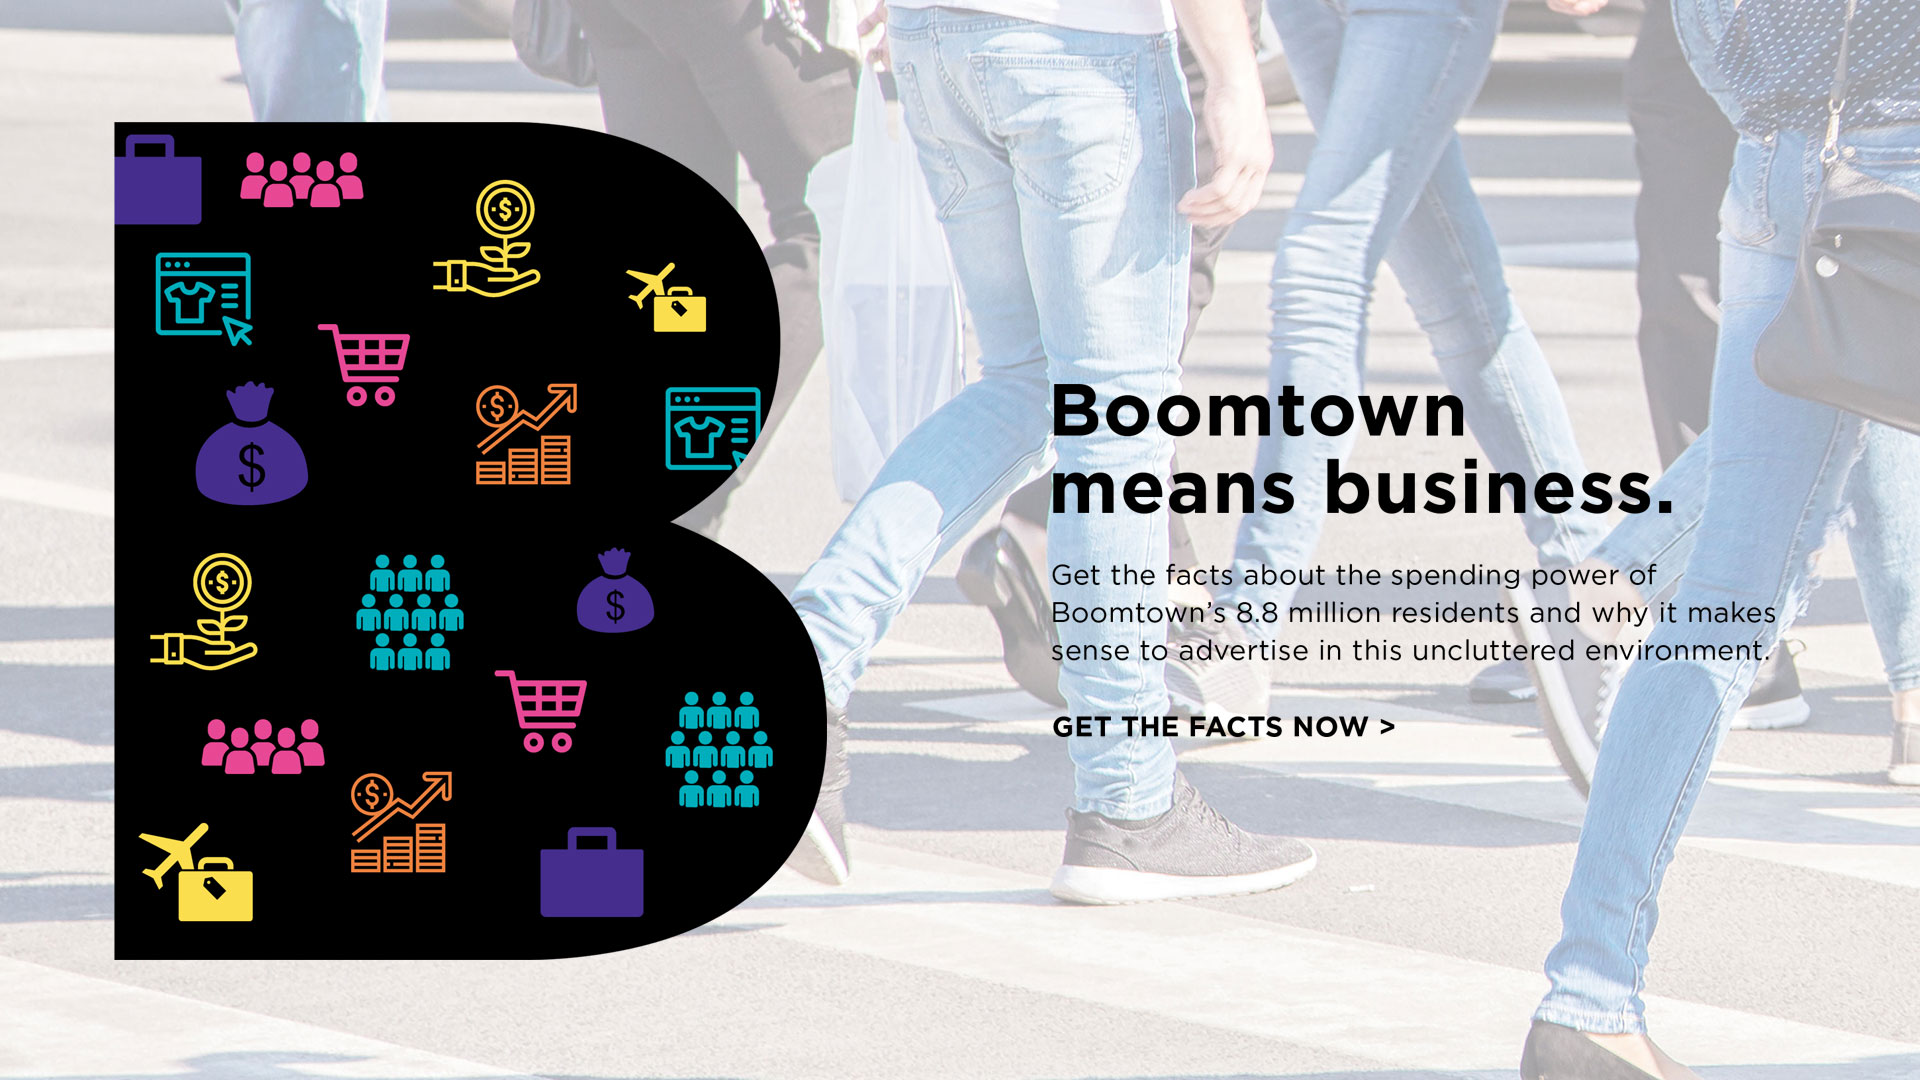 Boomtown insights and facts